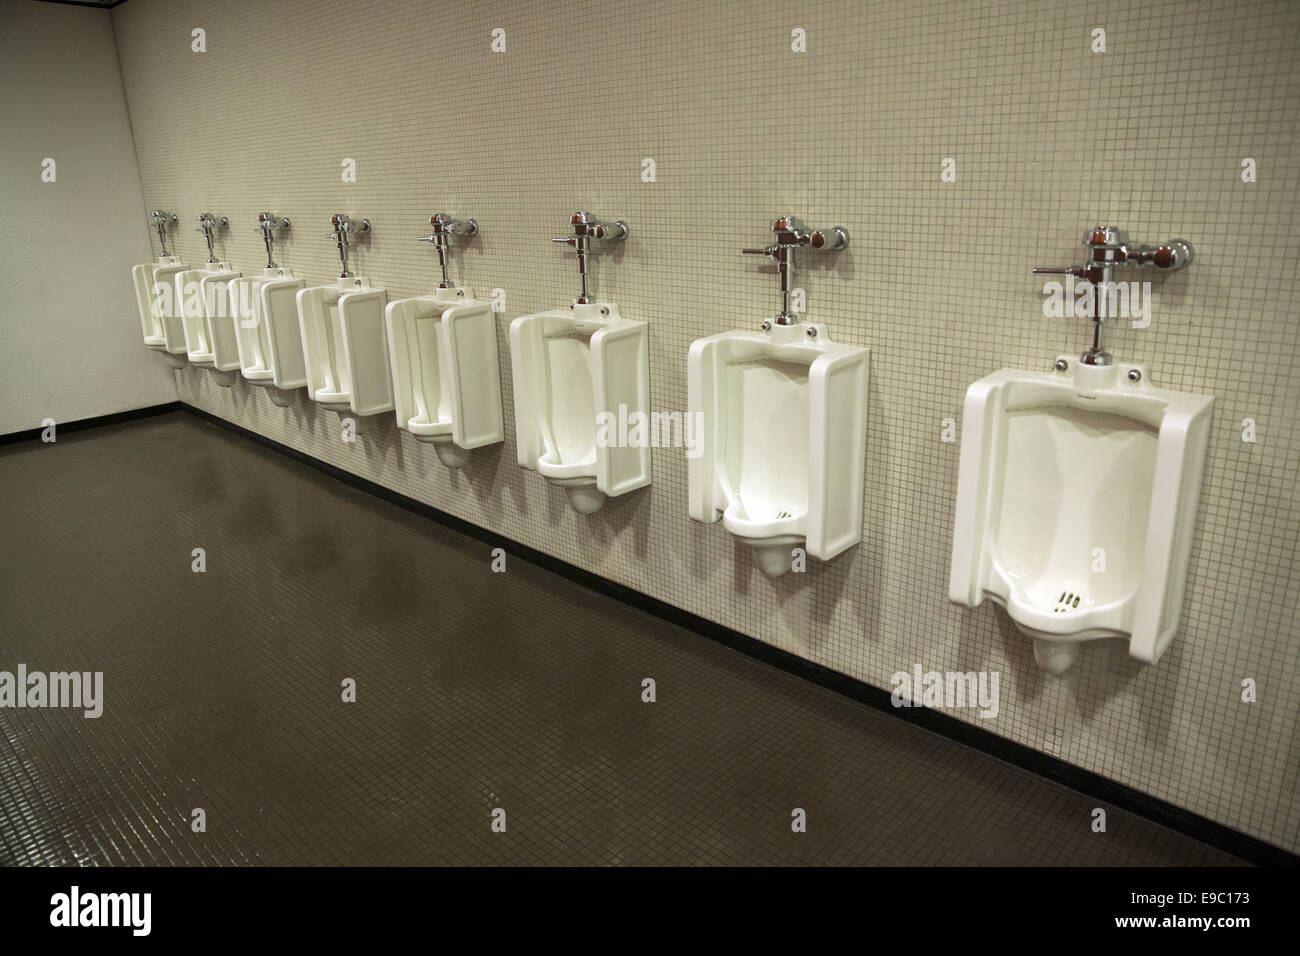 A Long Line Of Urinals In A Menu0027s Bathroom In A Manhattan Office Building.